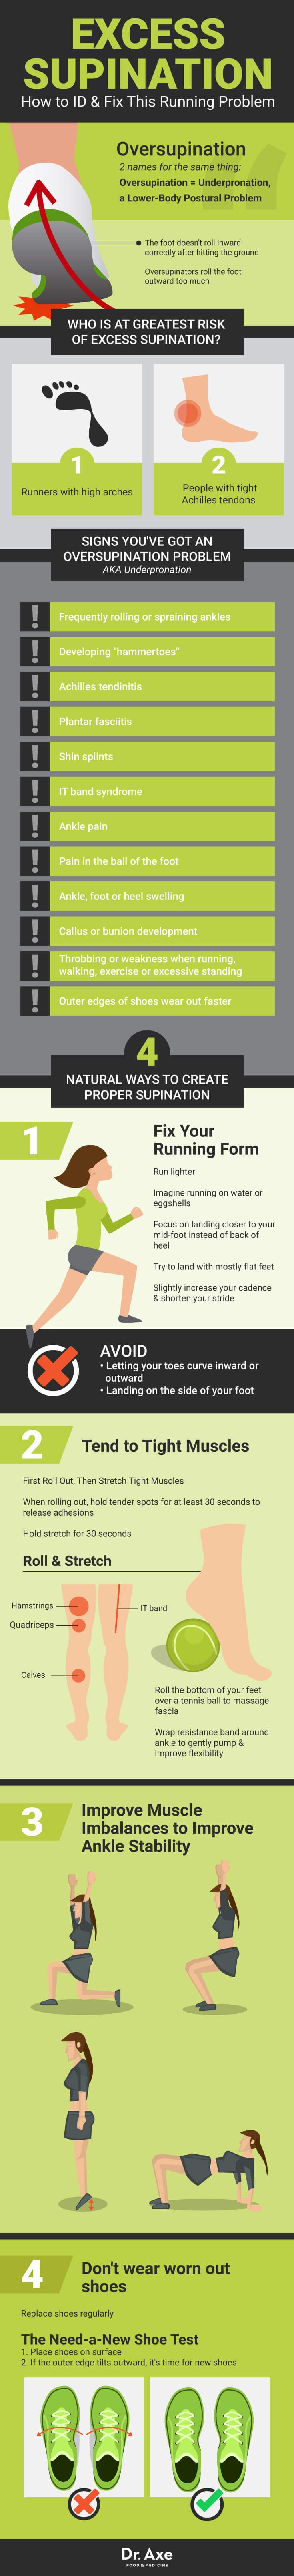 Do you Suffer from Excess Supination? Here's How to Fix It - Dr. Axe